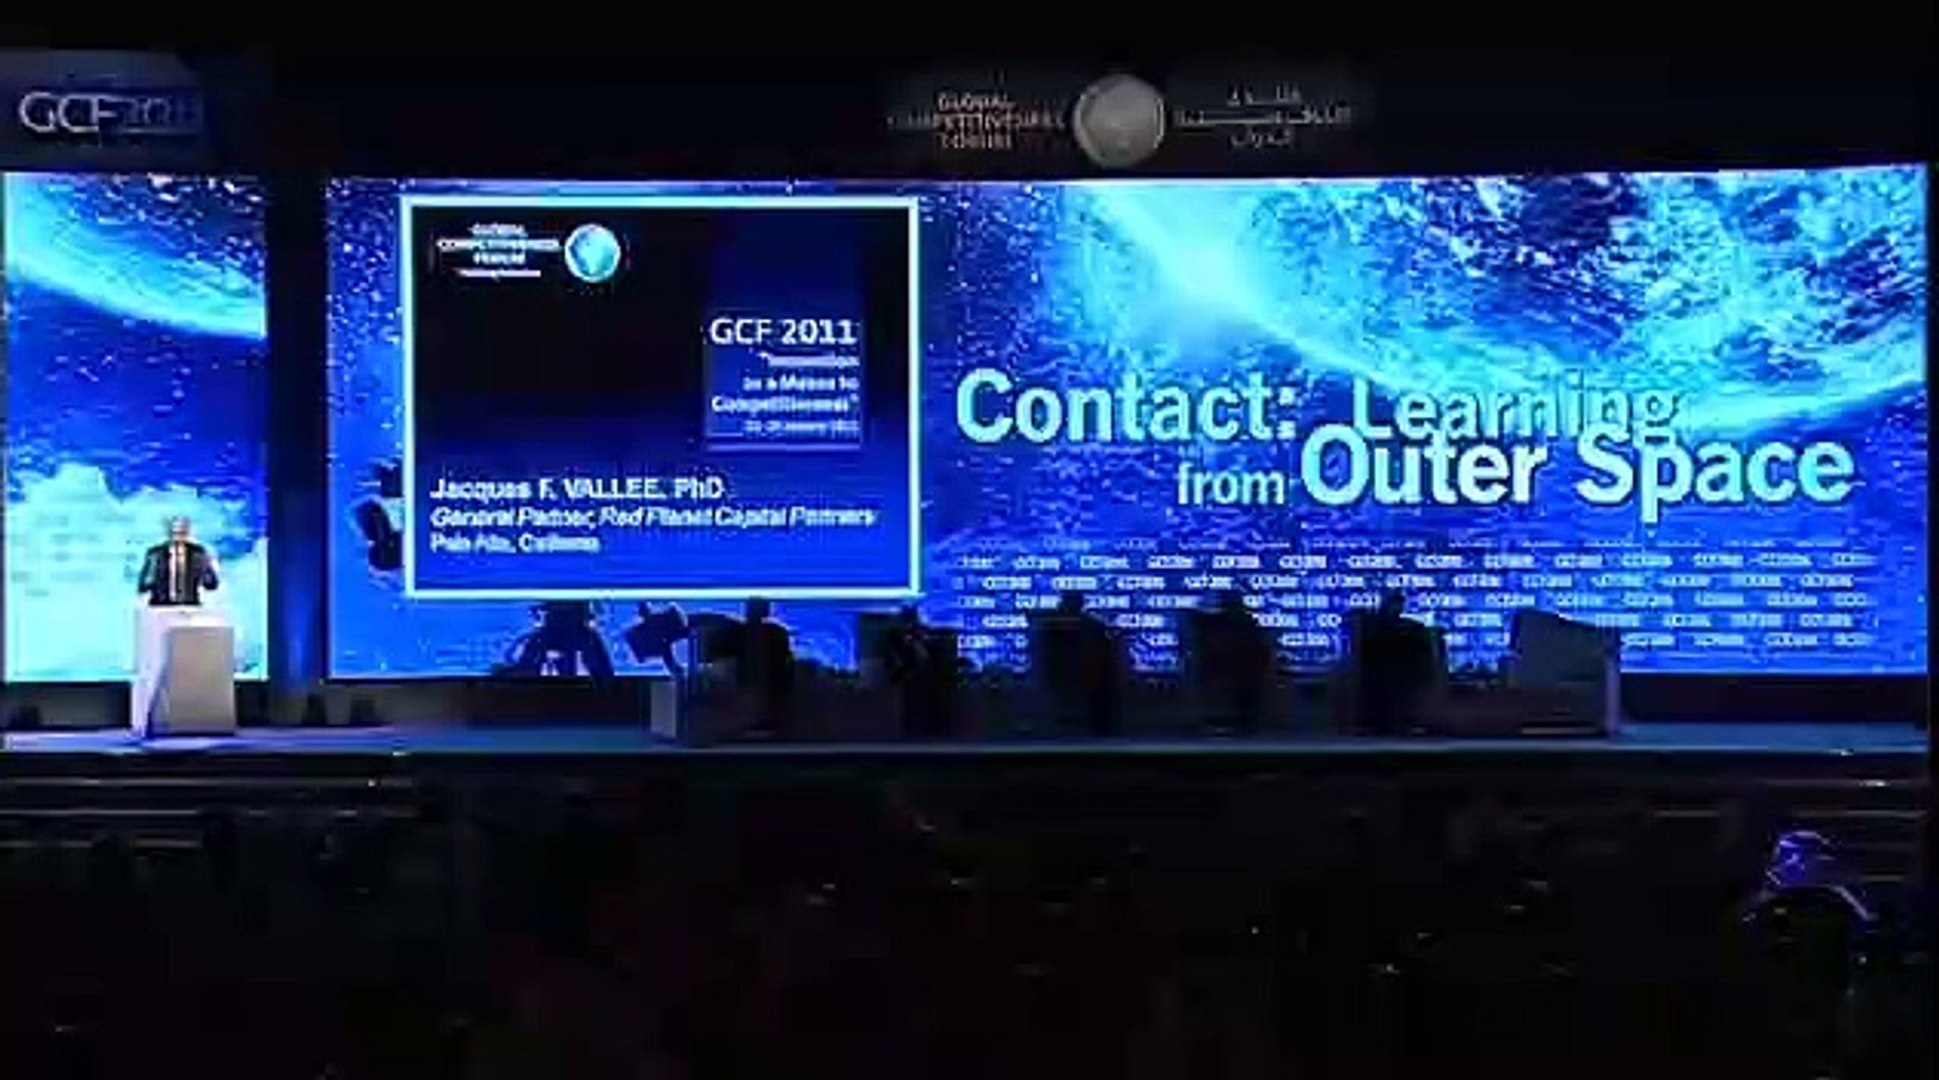 Jacques Vallee - Contact Learning from Outer Space - GCF 2011 - 01 -23